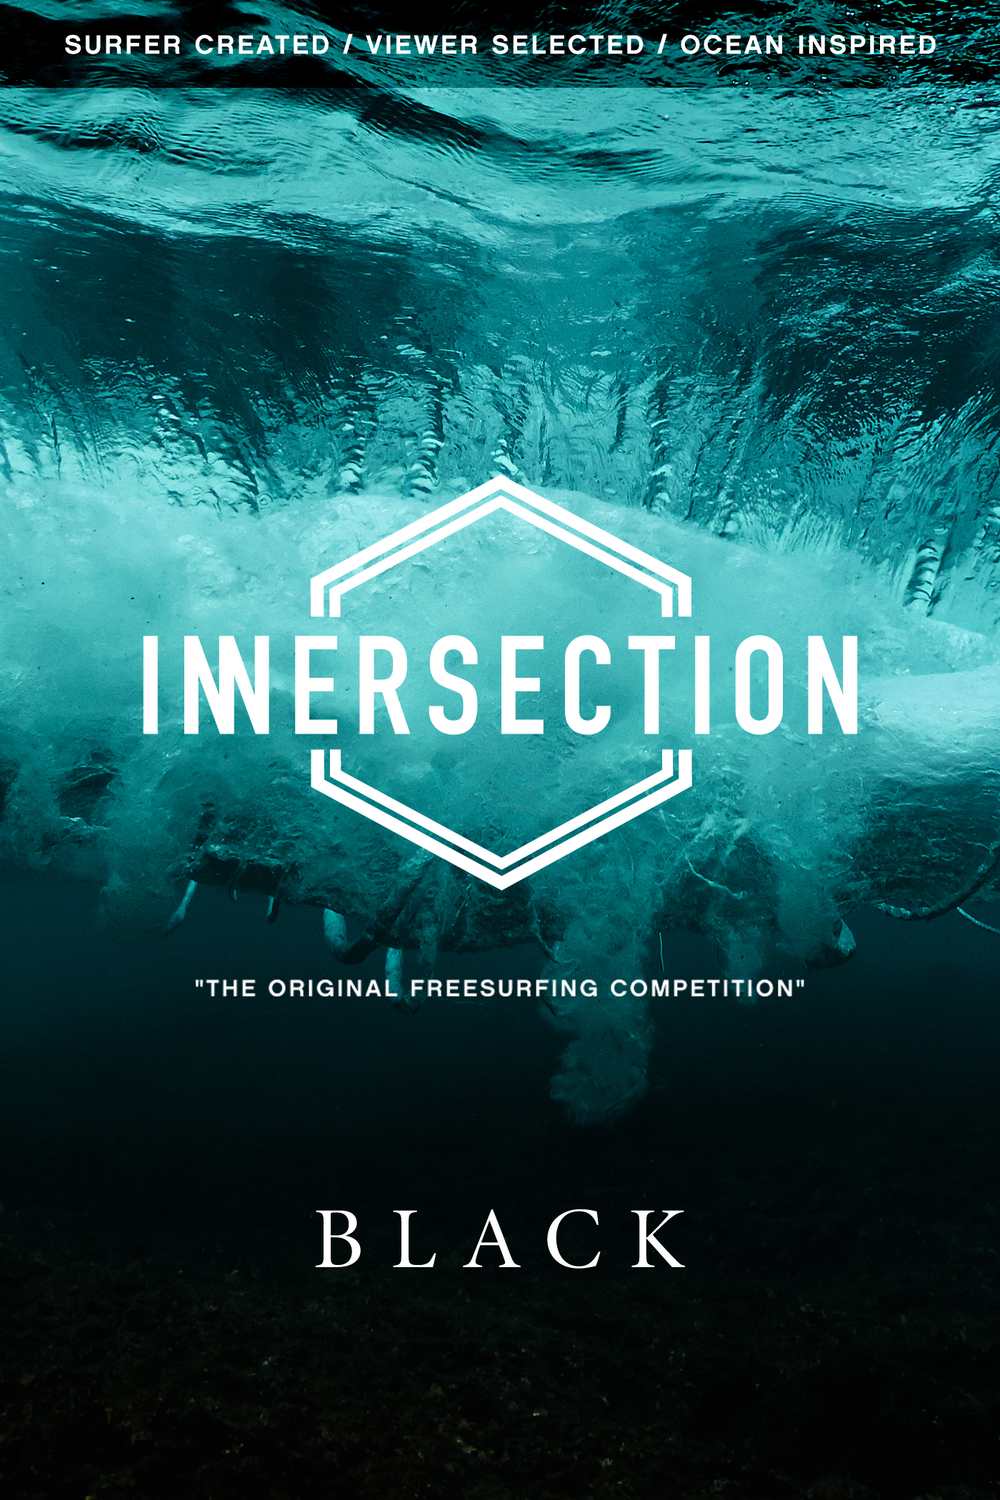 Innersection Black Surf Movie